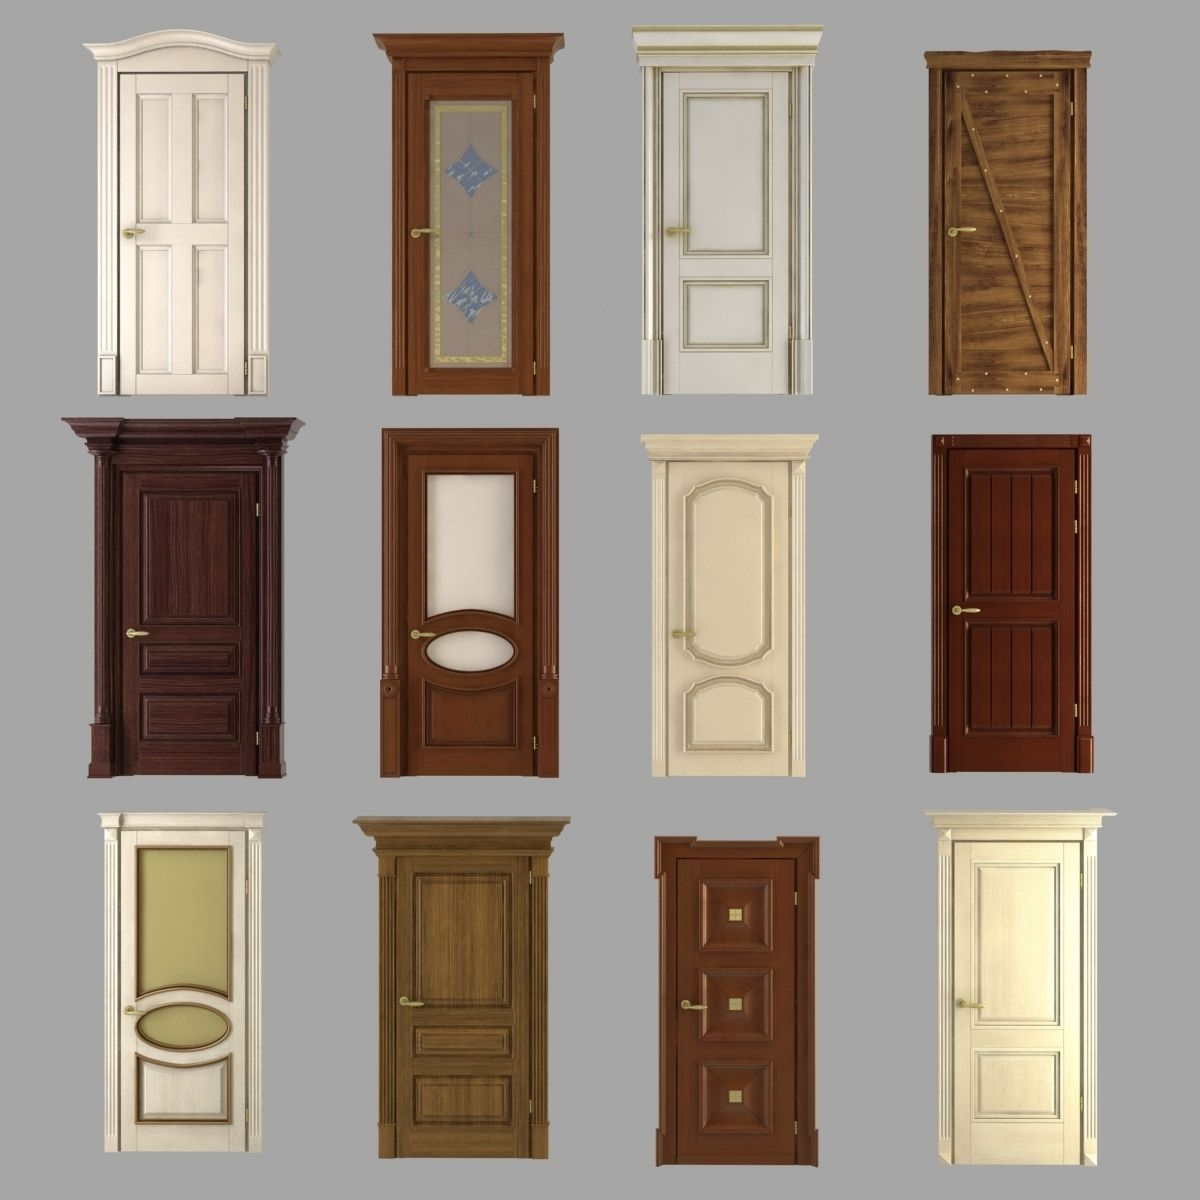 classic doors collection 3d model max obj 3ds fbx mtl 1 ... & Classic Doors Collection 3D model | CGTrader pezcame.com